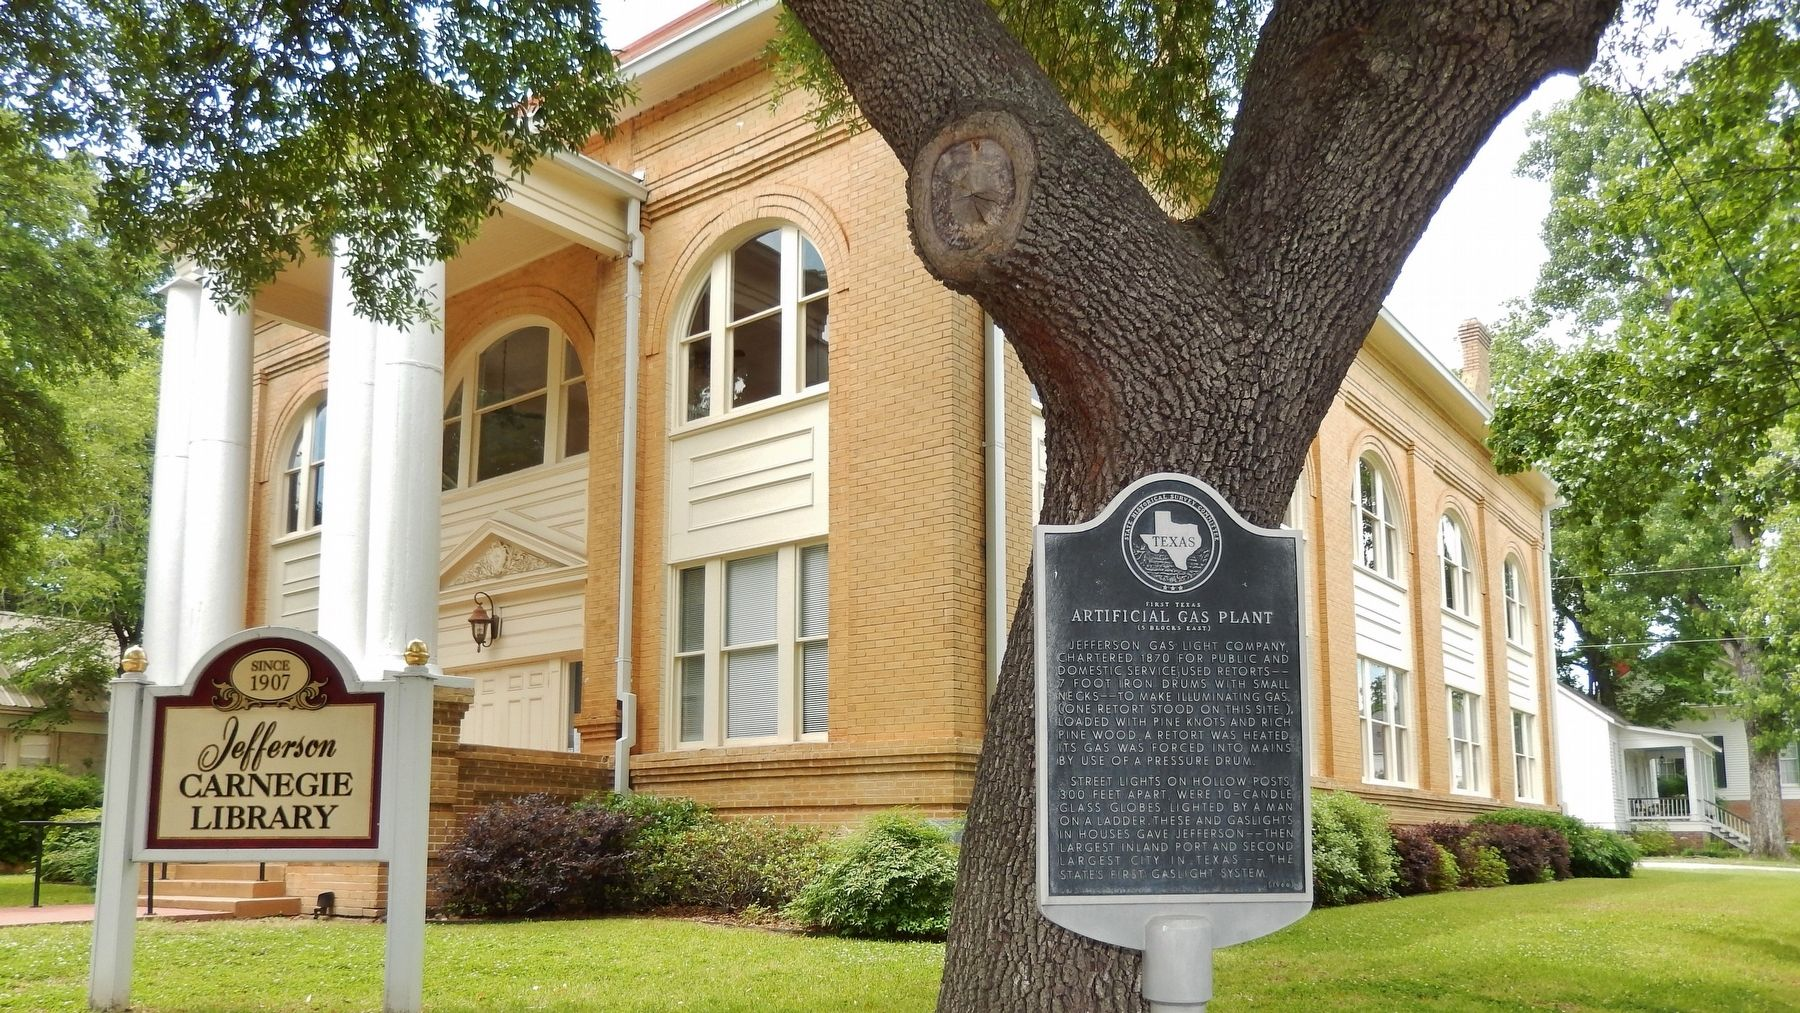 Jefferson Public Library (<i>corner view showing unrelated marker</i>) image. Click for full size.